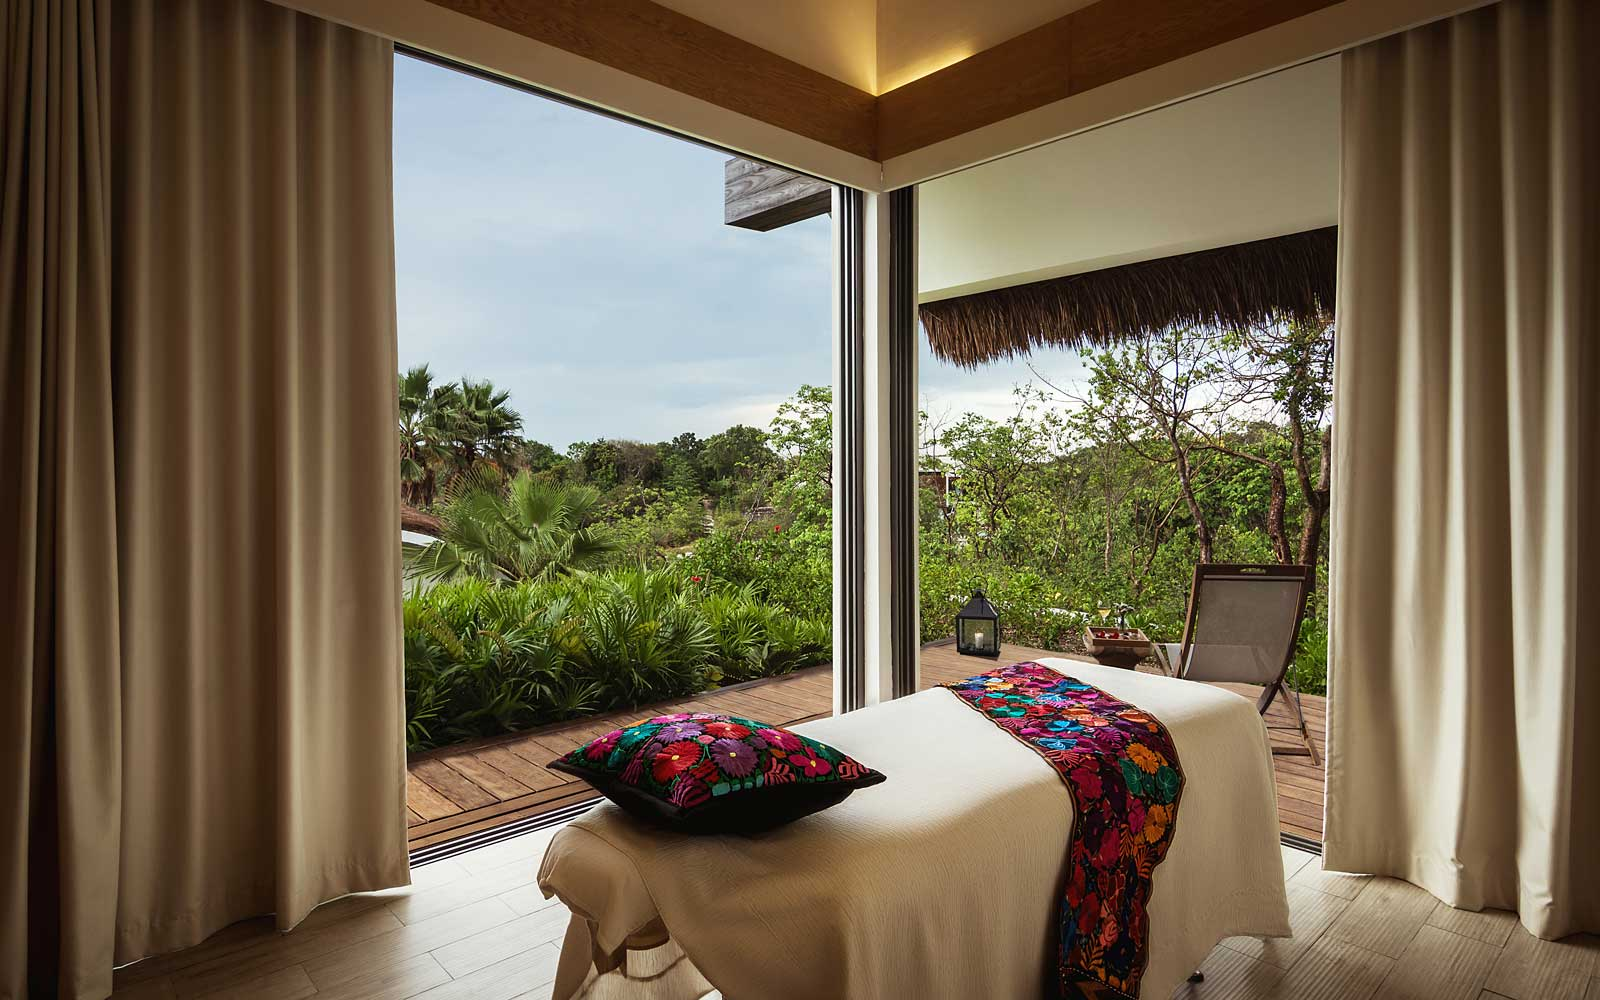 Andaz Mayakoba spa treatment room